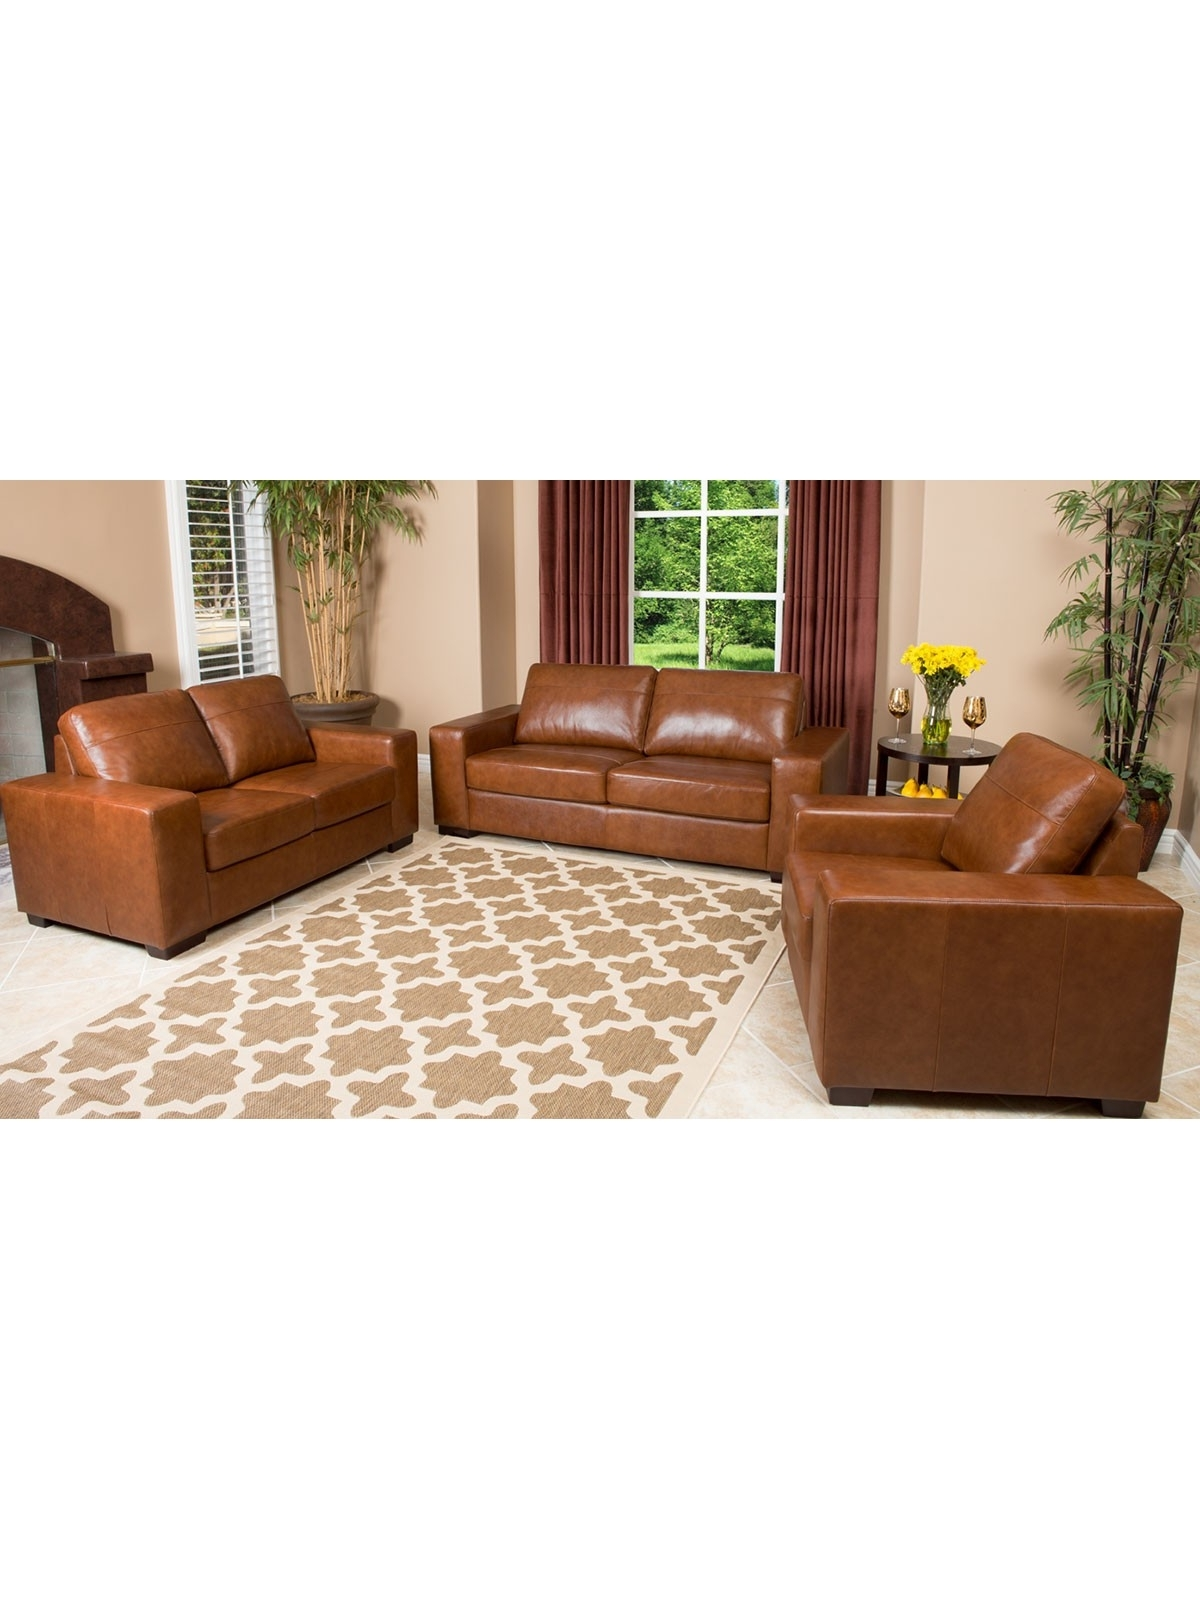 Camel Colored Sectional Sofas Regarding Favorite Leather Furniture Companies Pearce Camel Top Grain Couch F Living (View 11 of 20)